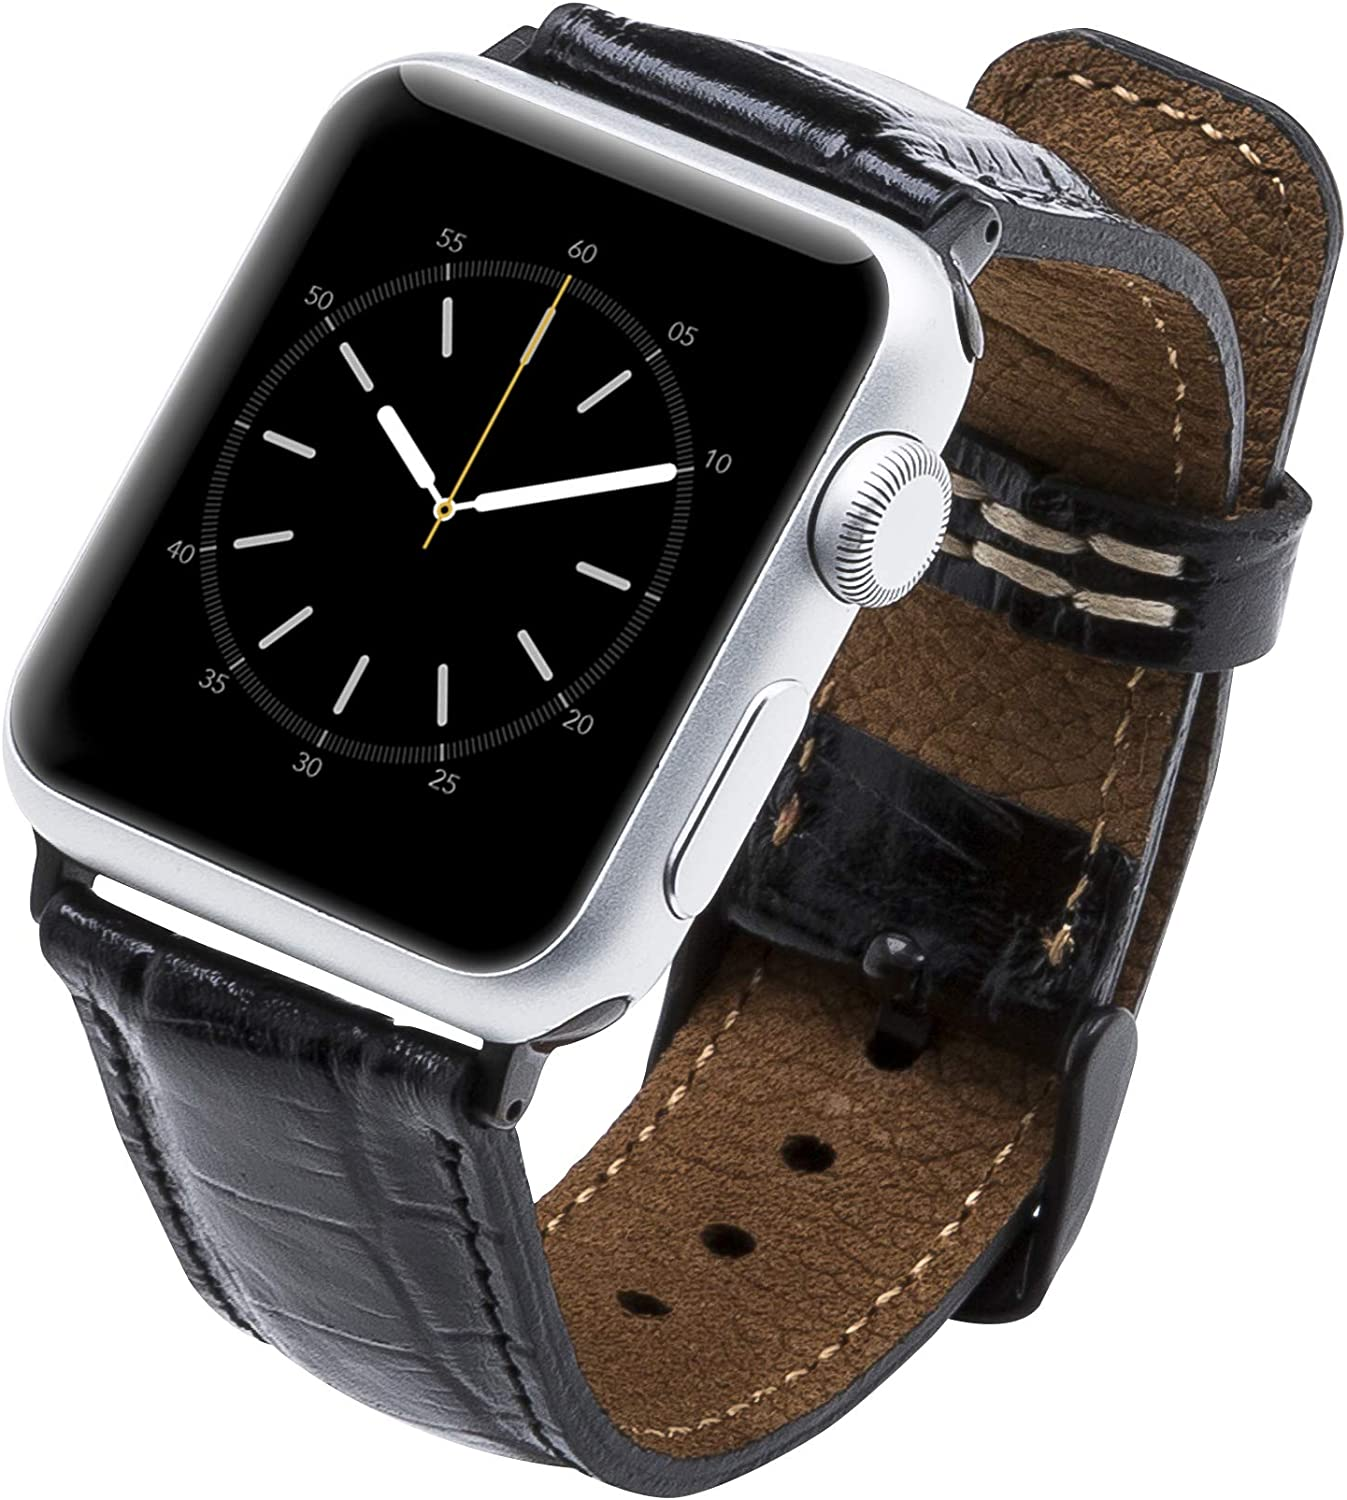 Venito Tuscany Leather Watch Band Compatible with Apple Watch 42mm 44mm - Watch Strap Designed for iwatch Series 1 2 3 4 5 6 (Black Crocodile w/Black Connector Clasp)